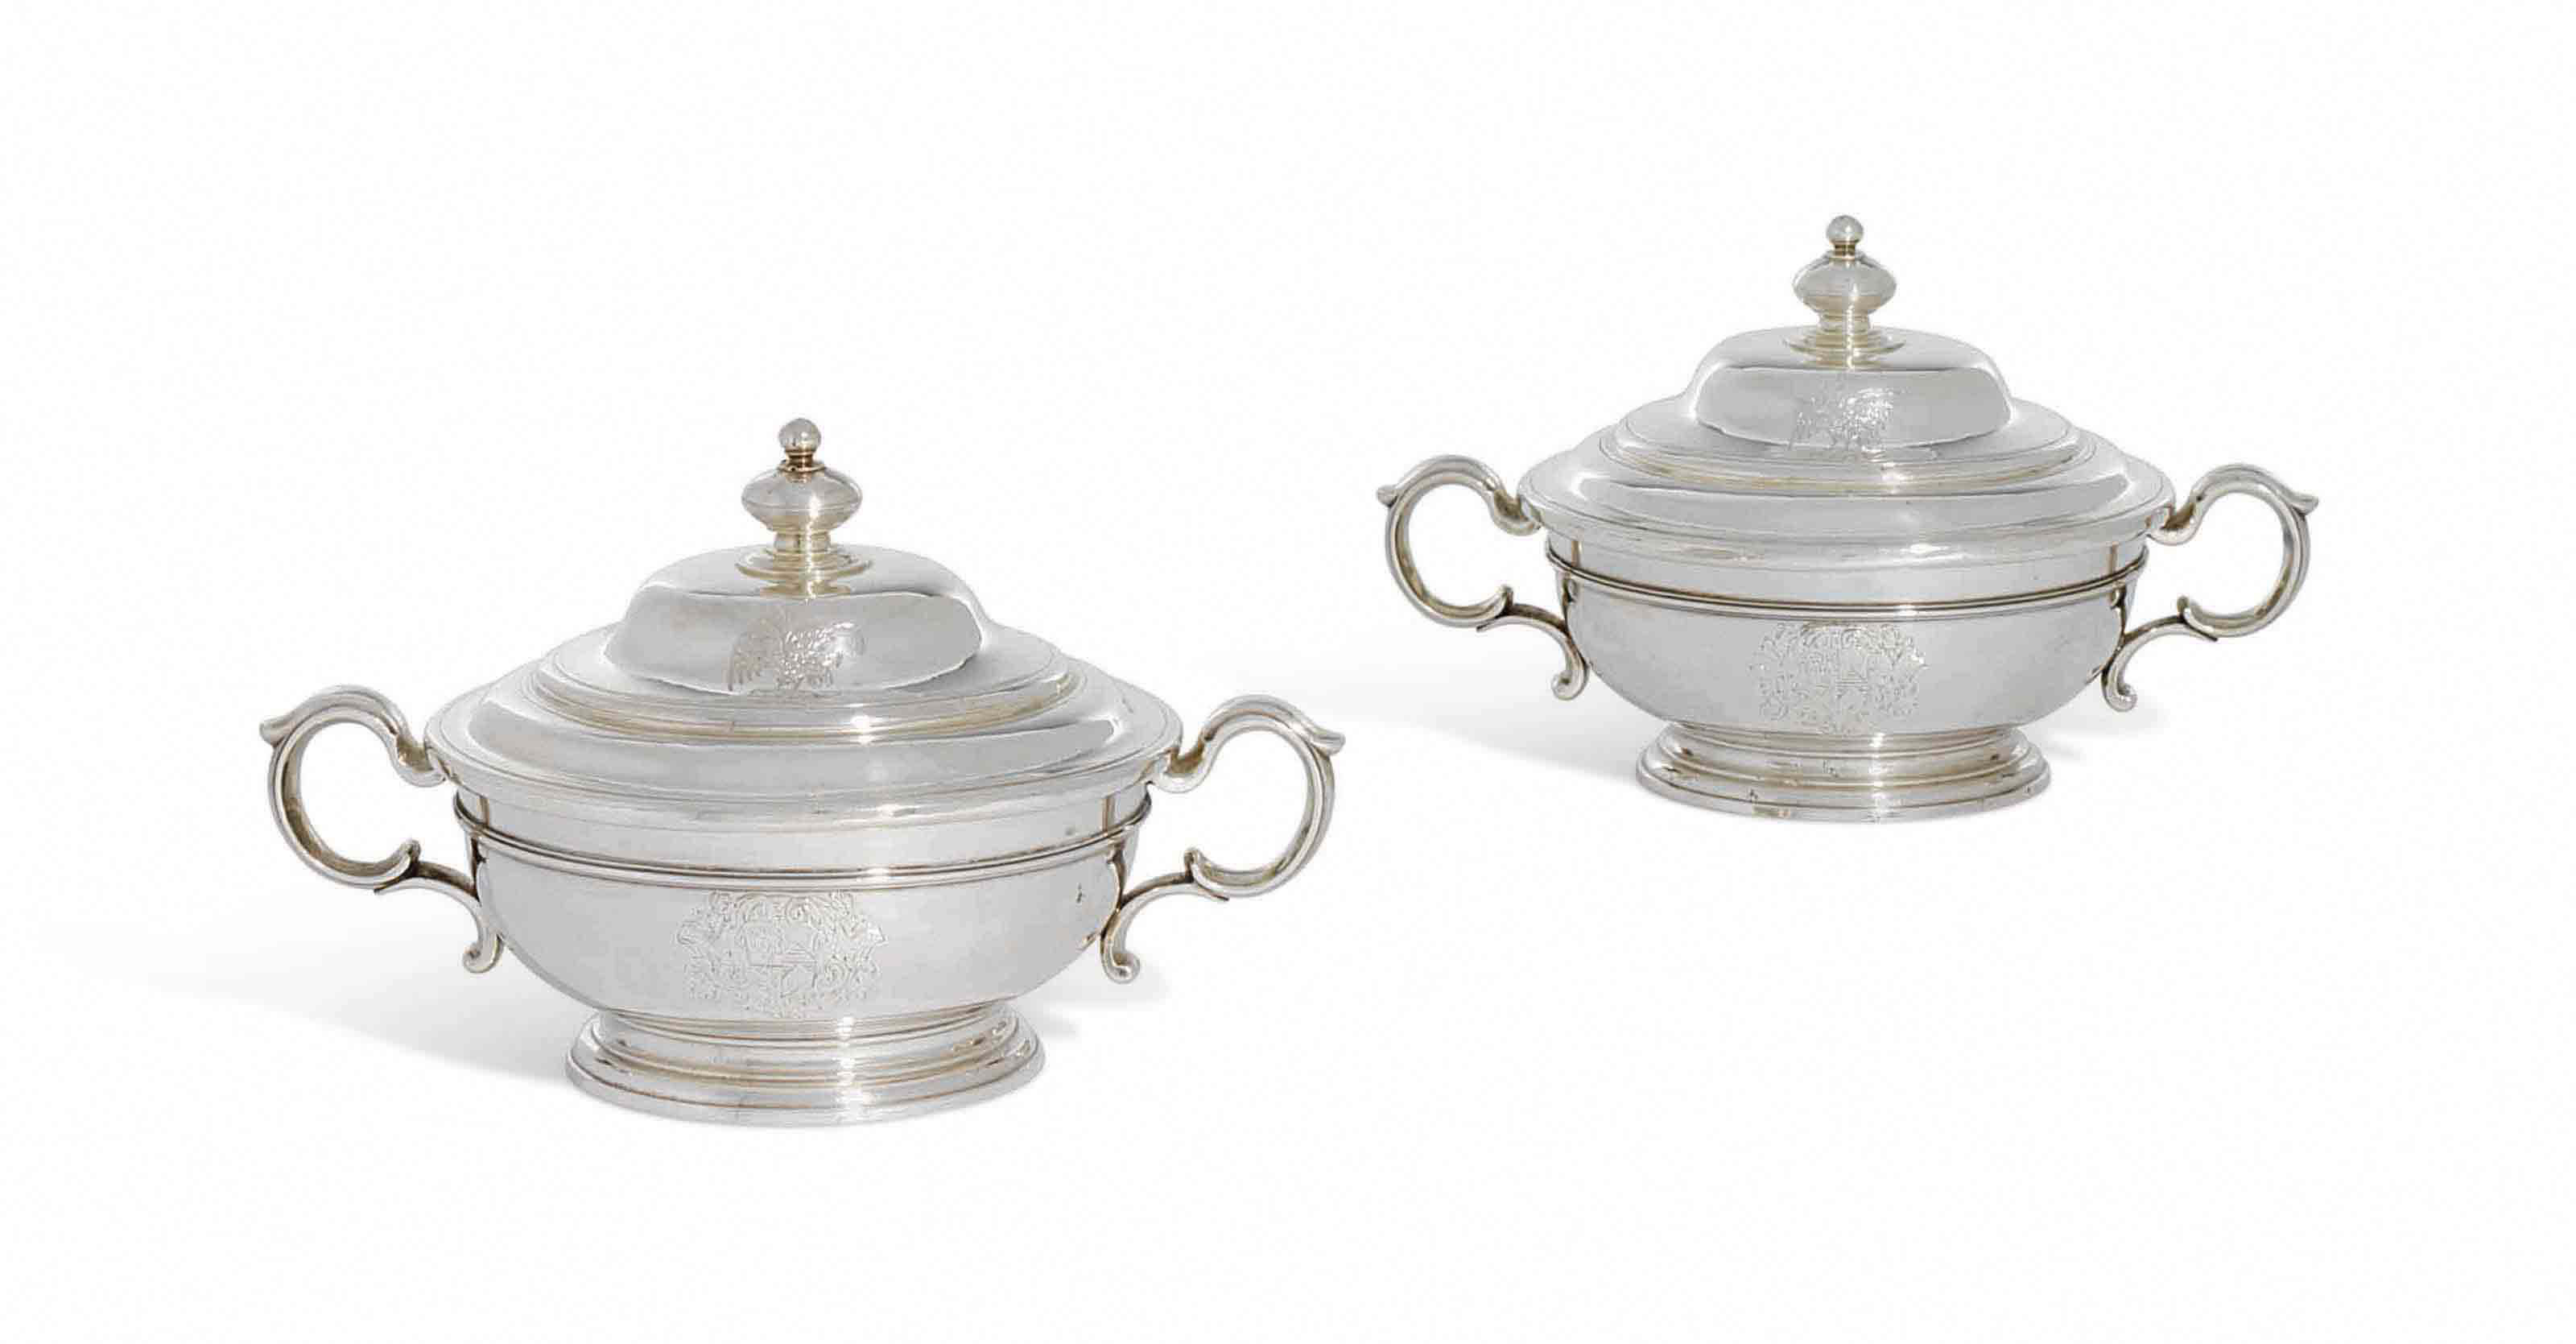 A PAIR OF GEORGE I SILVER BOWLS AND COVERS